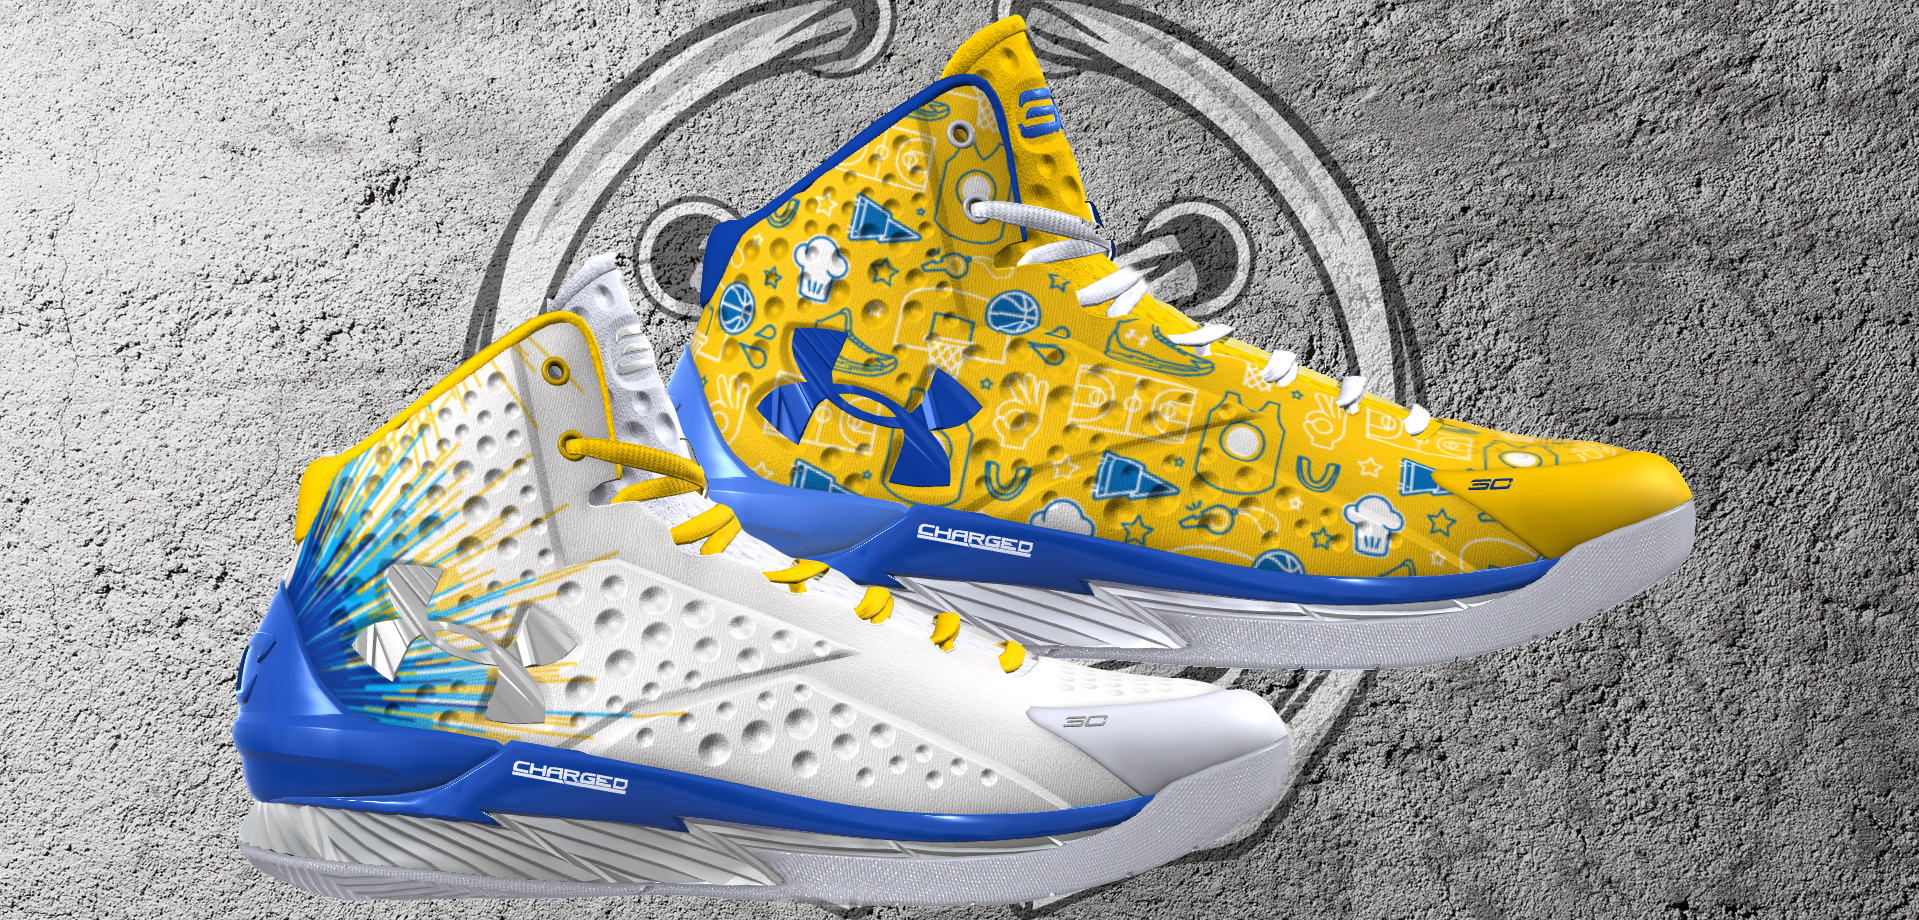 Under-Armour-Curry-1-ICON-Championship-1